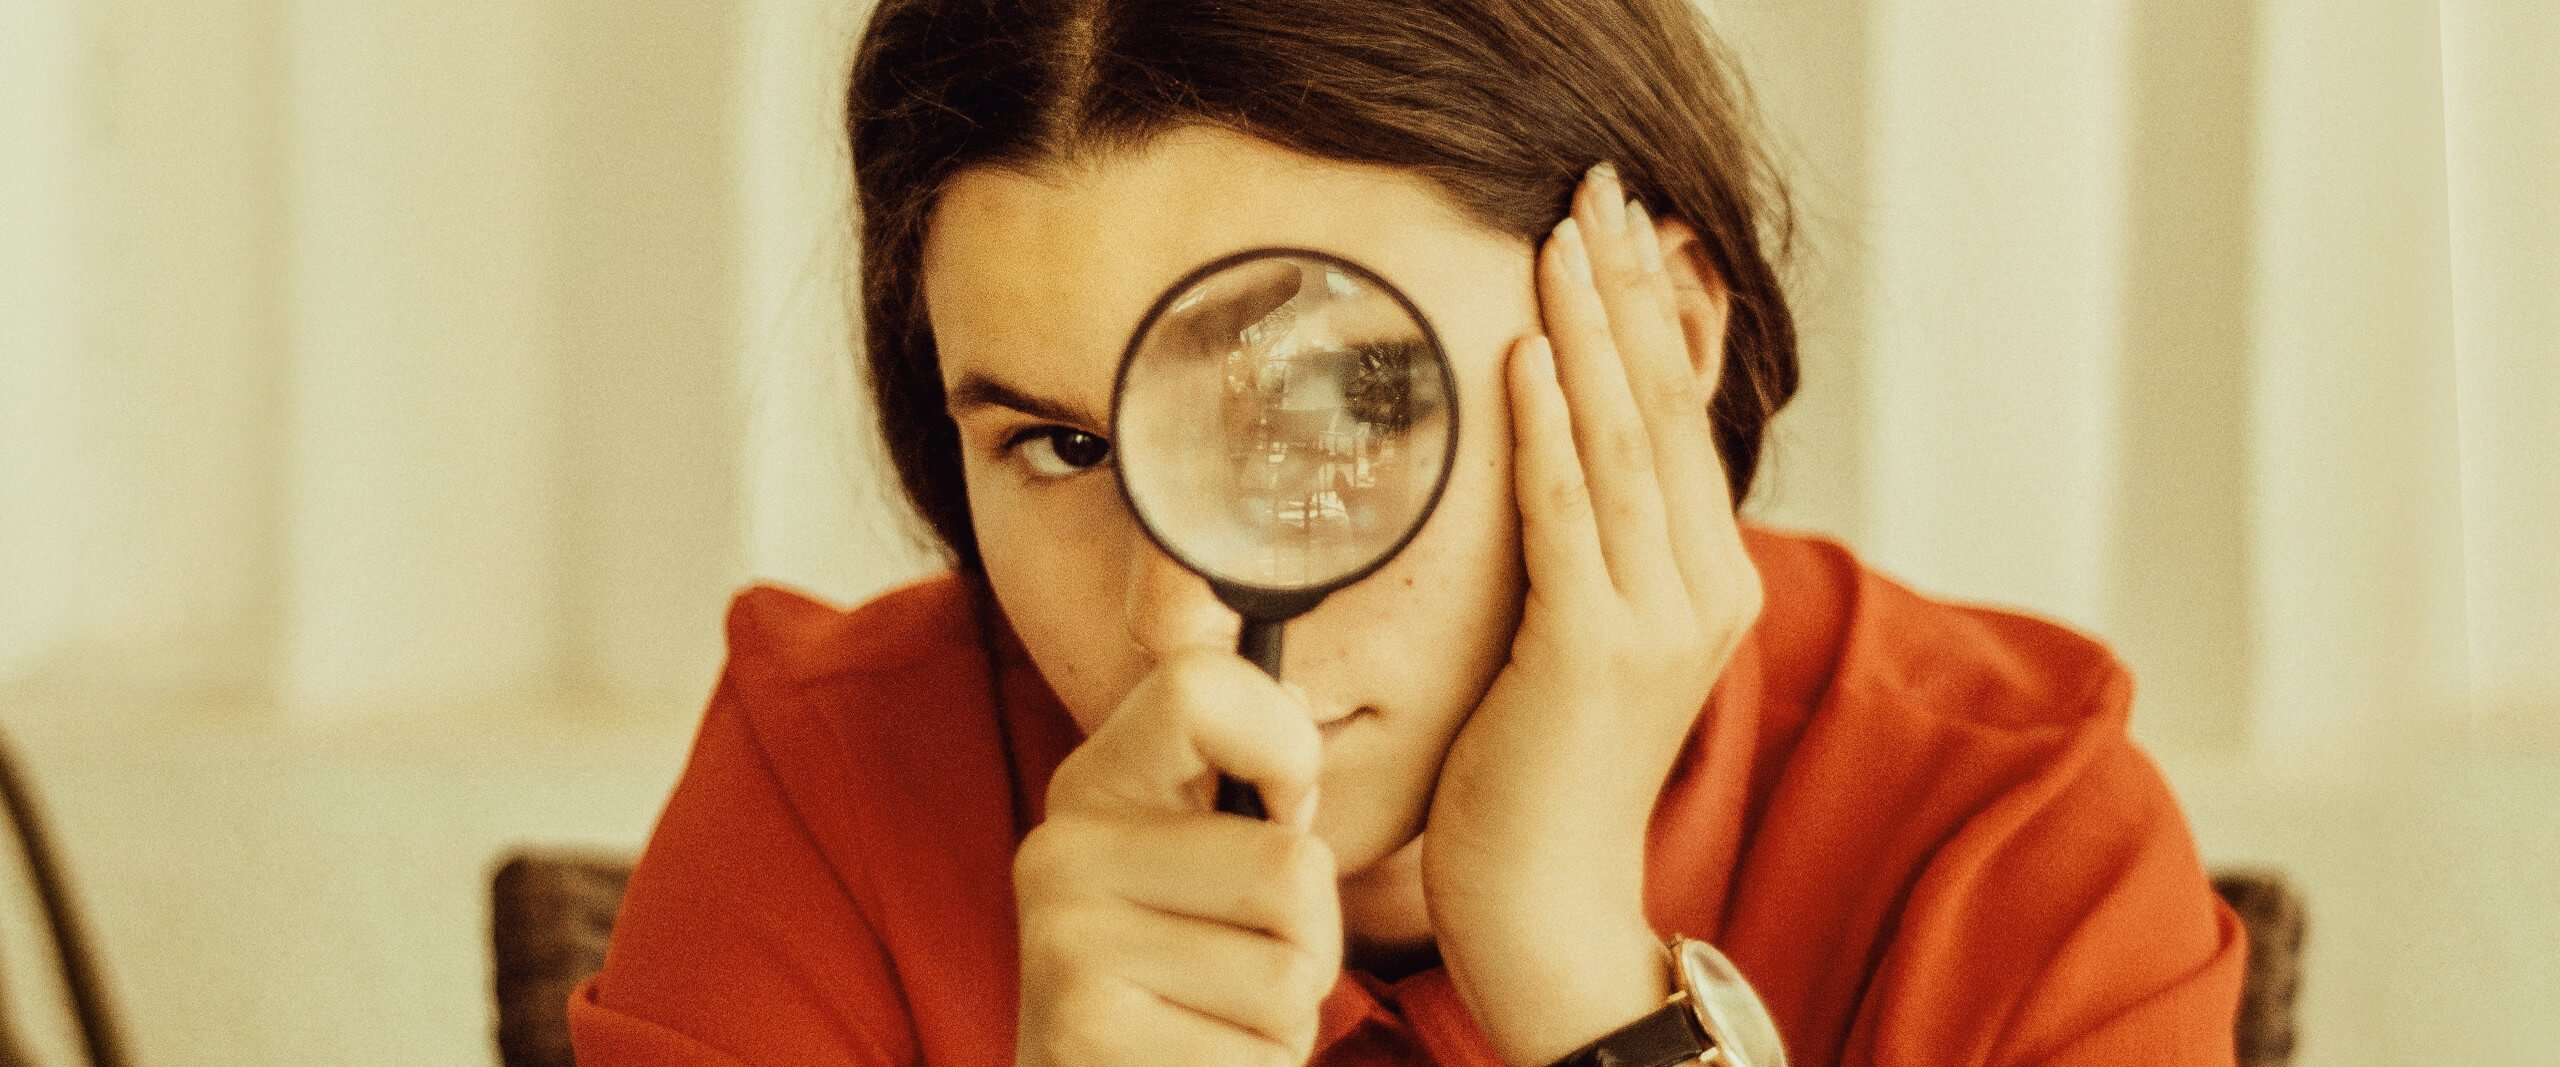 Photo of a woman in an orange shirt looking into the camera with a magnifying glass up to her eye